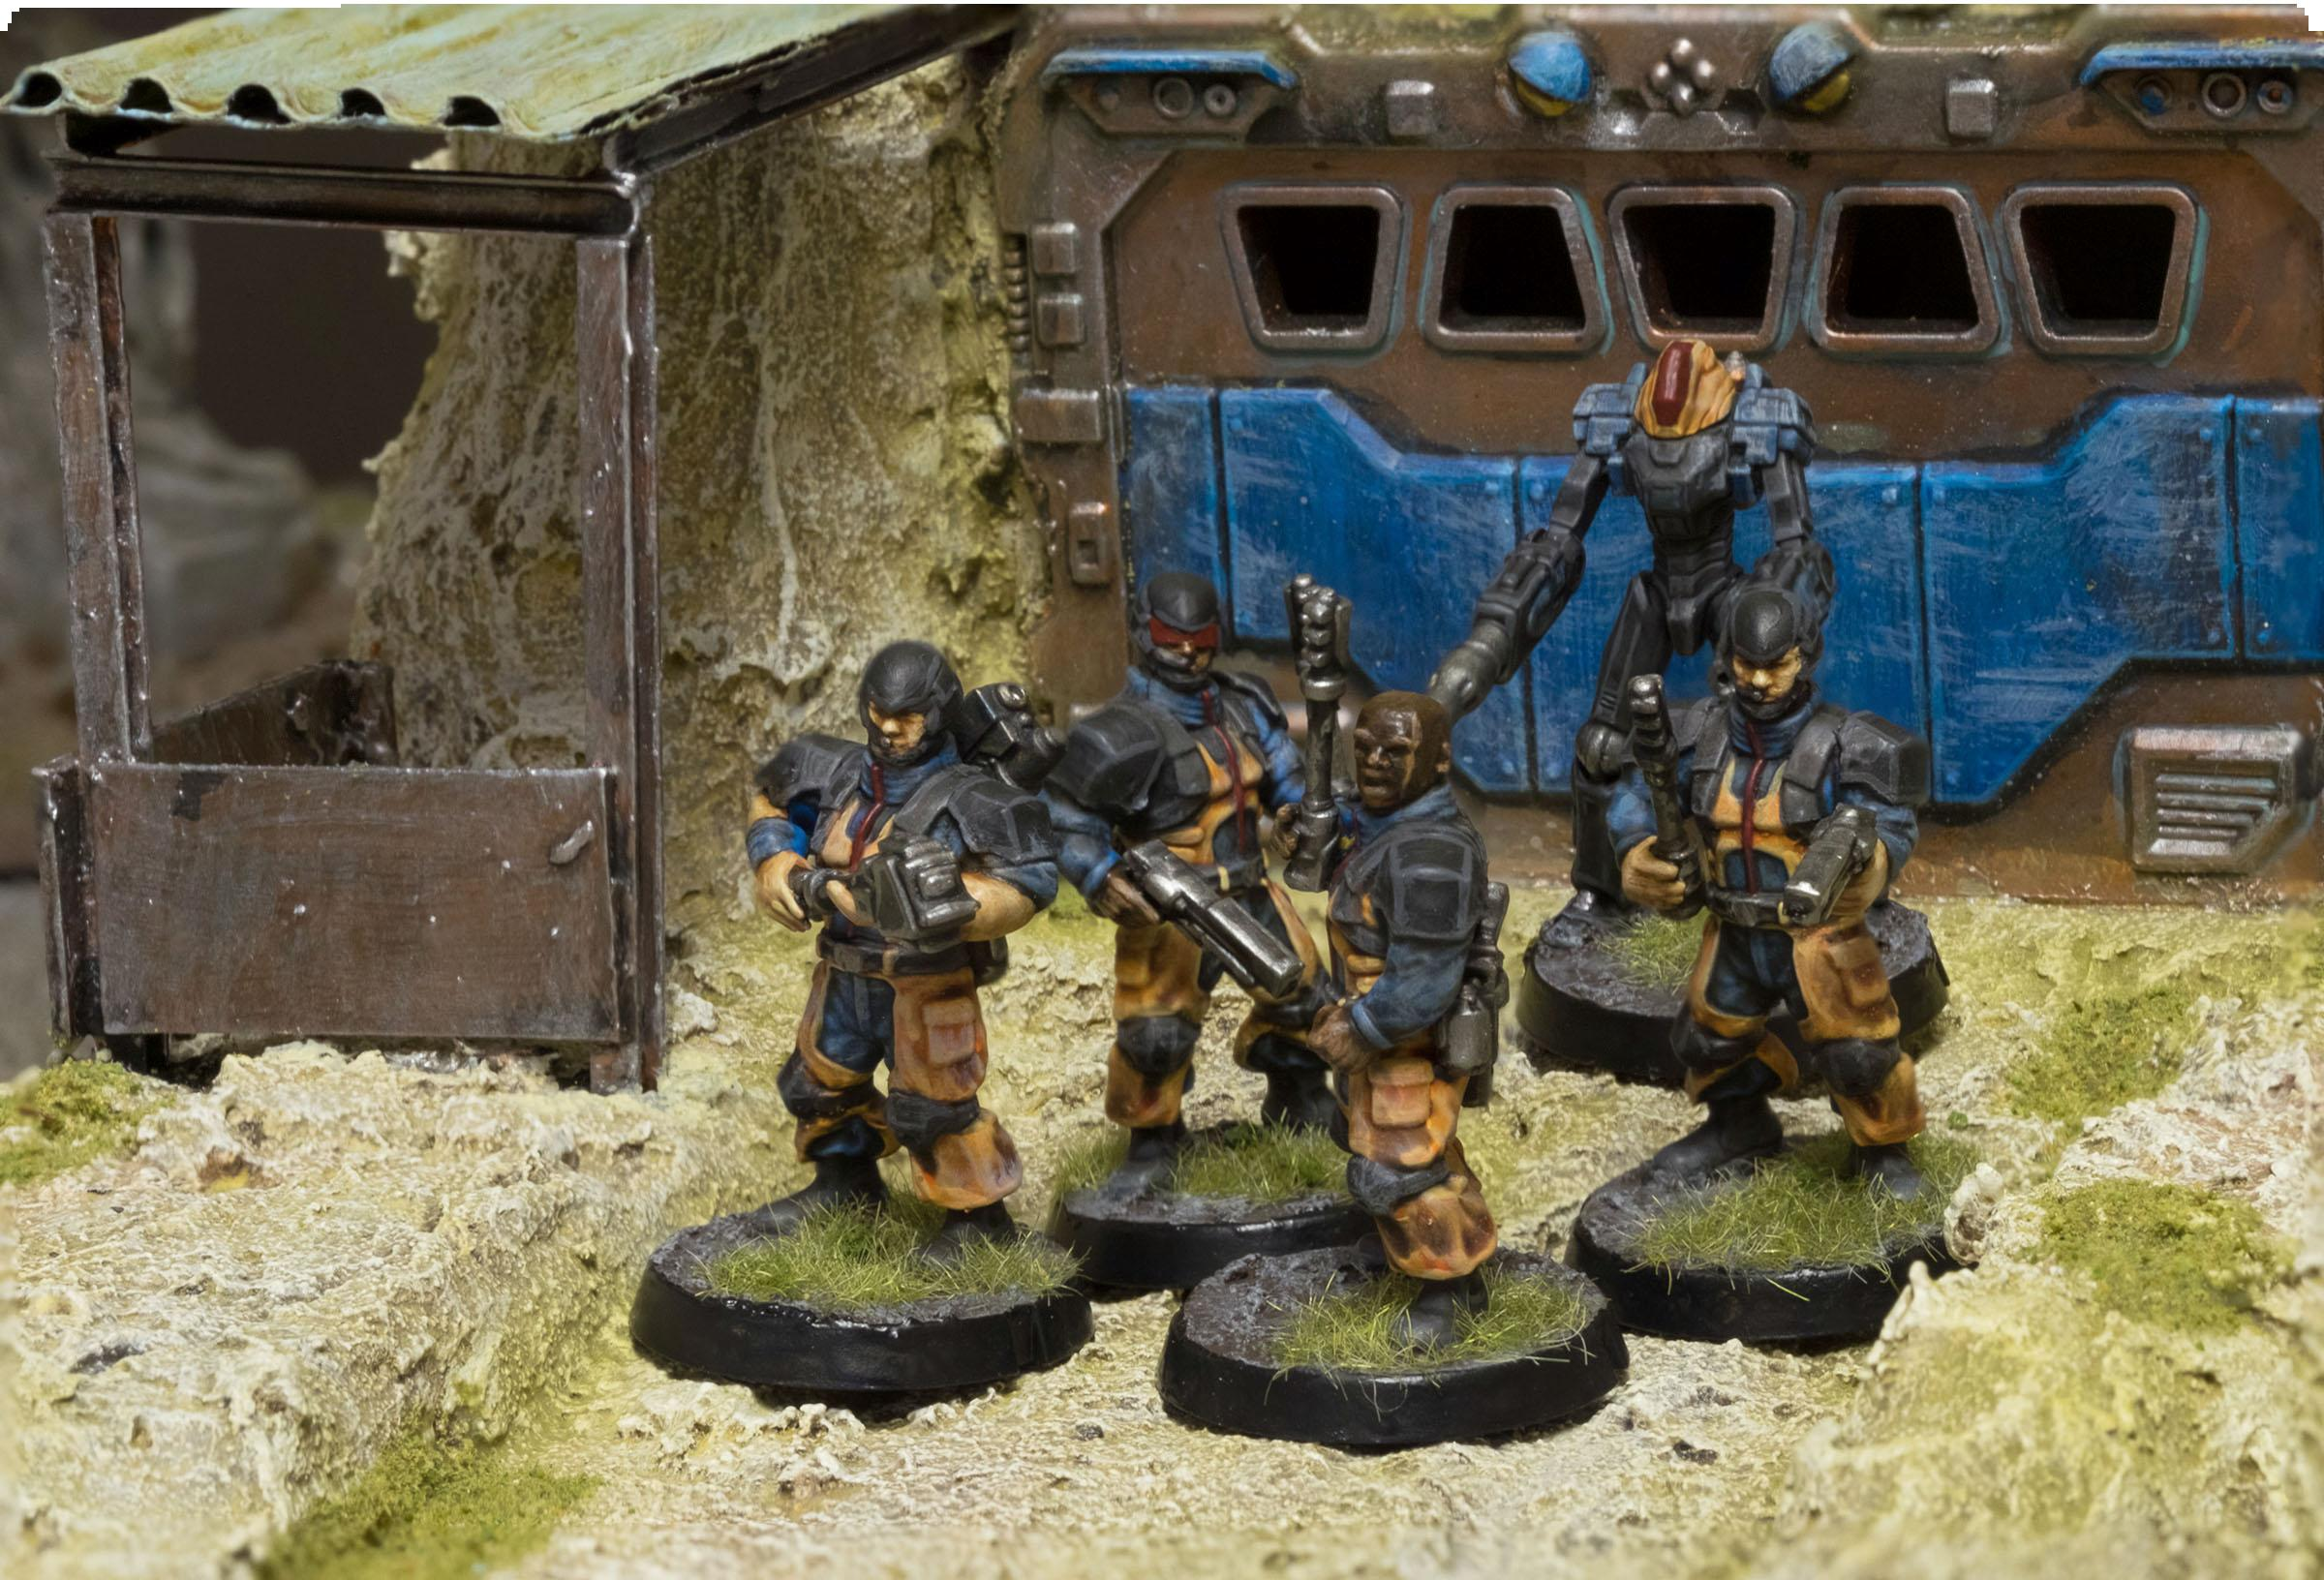 Burnbot, Contractor, Epirian, Maelstrom's Edge, Outpost, Subjugator, Suppresion Team, Terrain